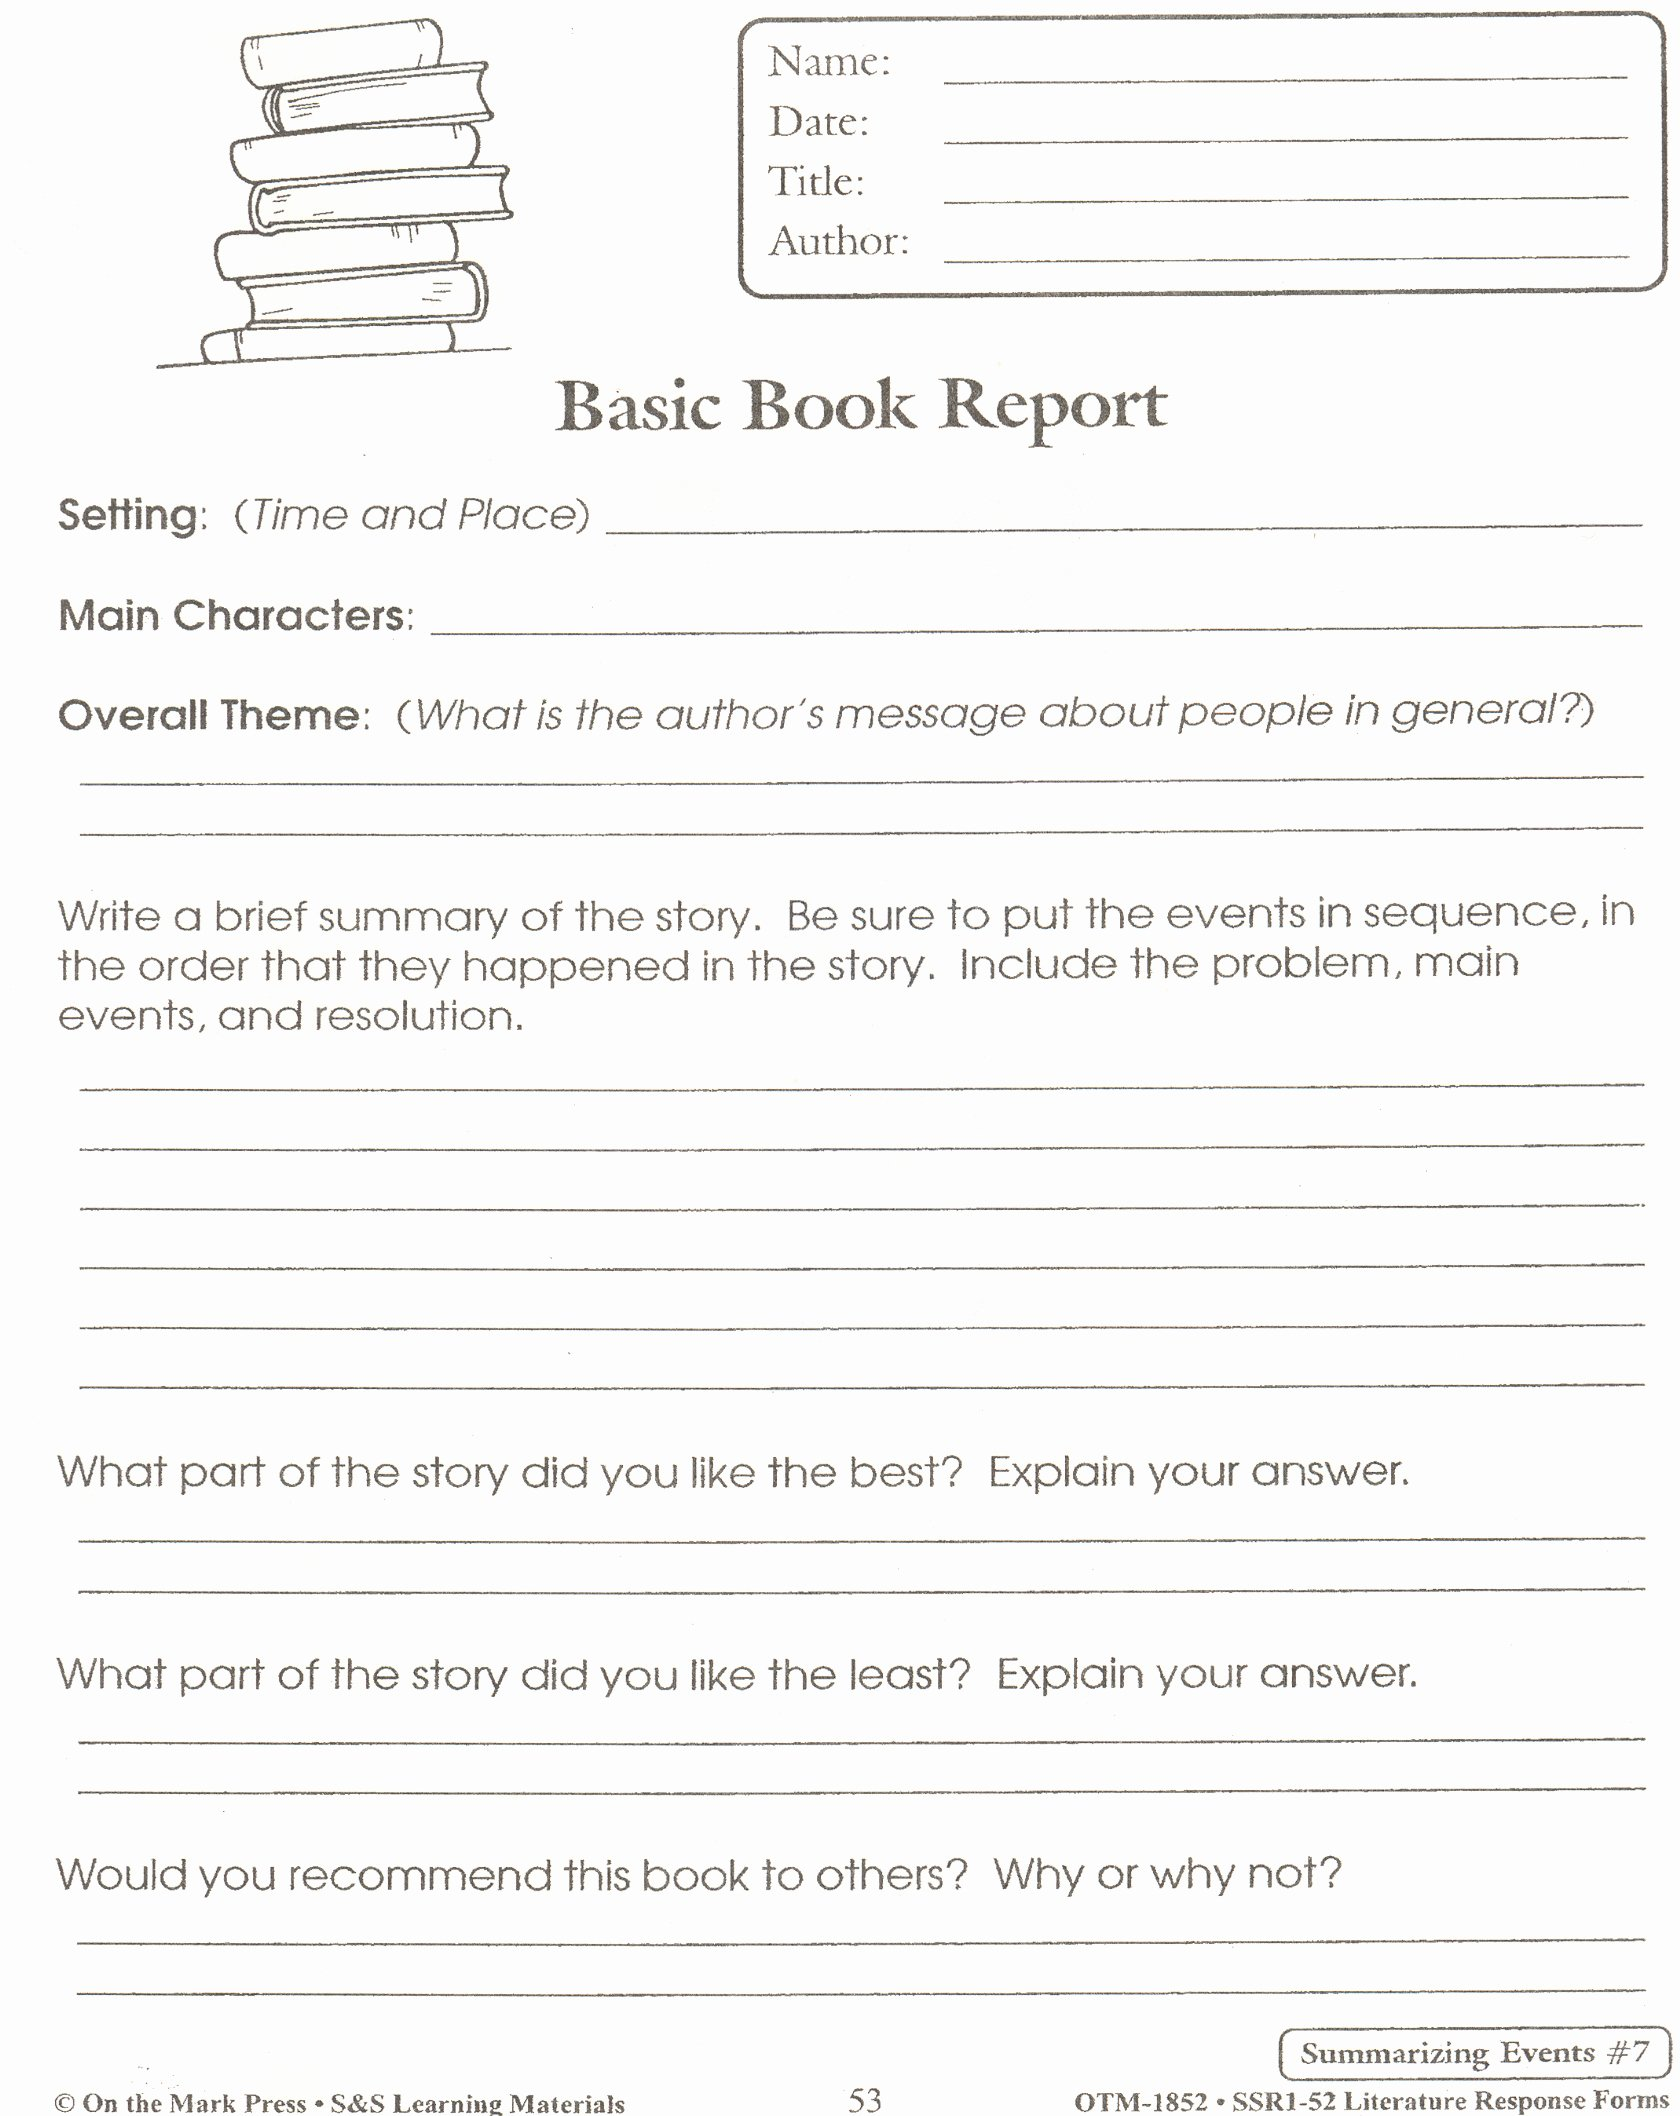 6th Grade Book Report Template Beautiful Best S Of Book Report Template 5th Grade 5th Grade Book Report Template 6th Grade Book